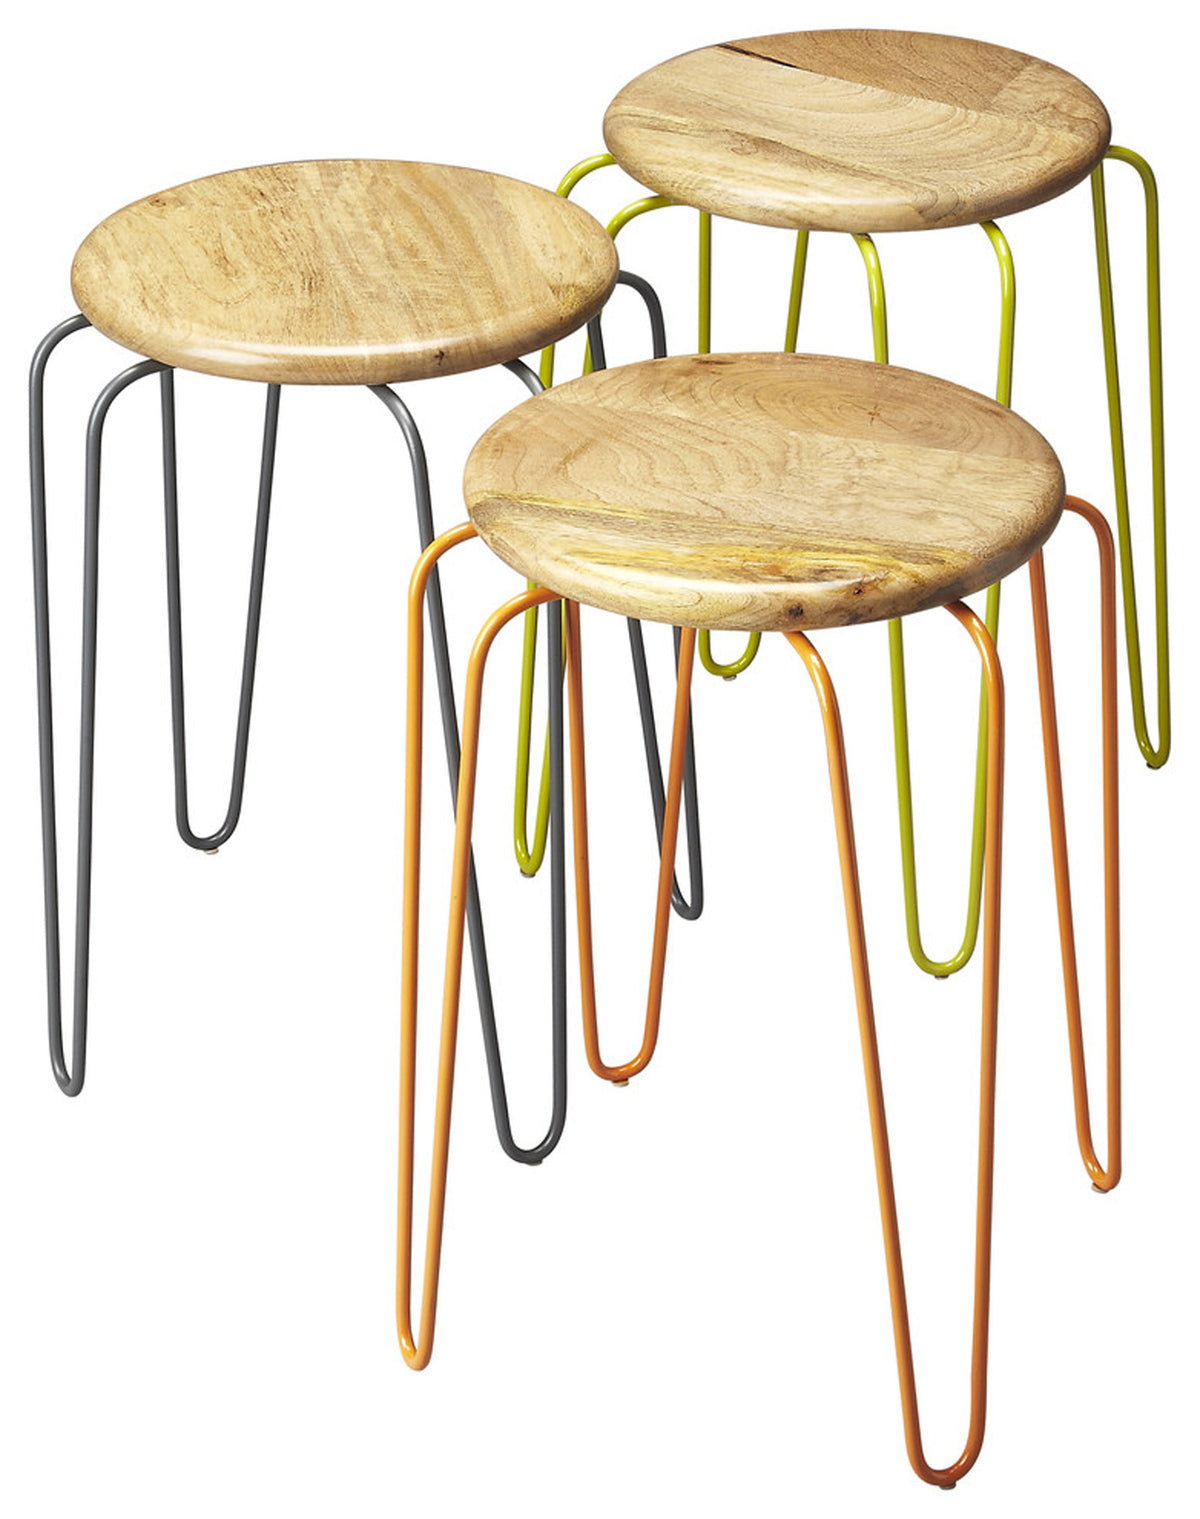 EASTON - WOOD & IRON - STACKABLE STOOLS